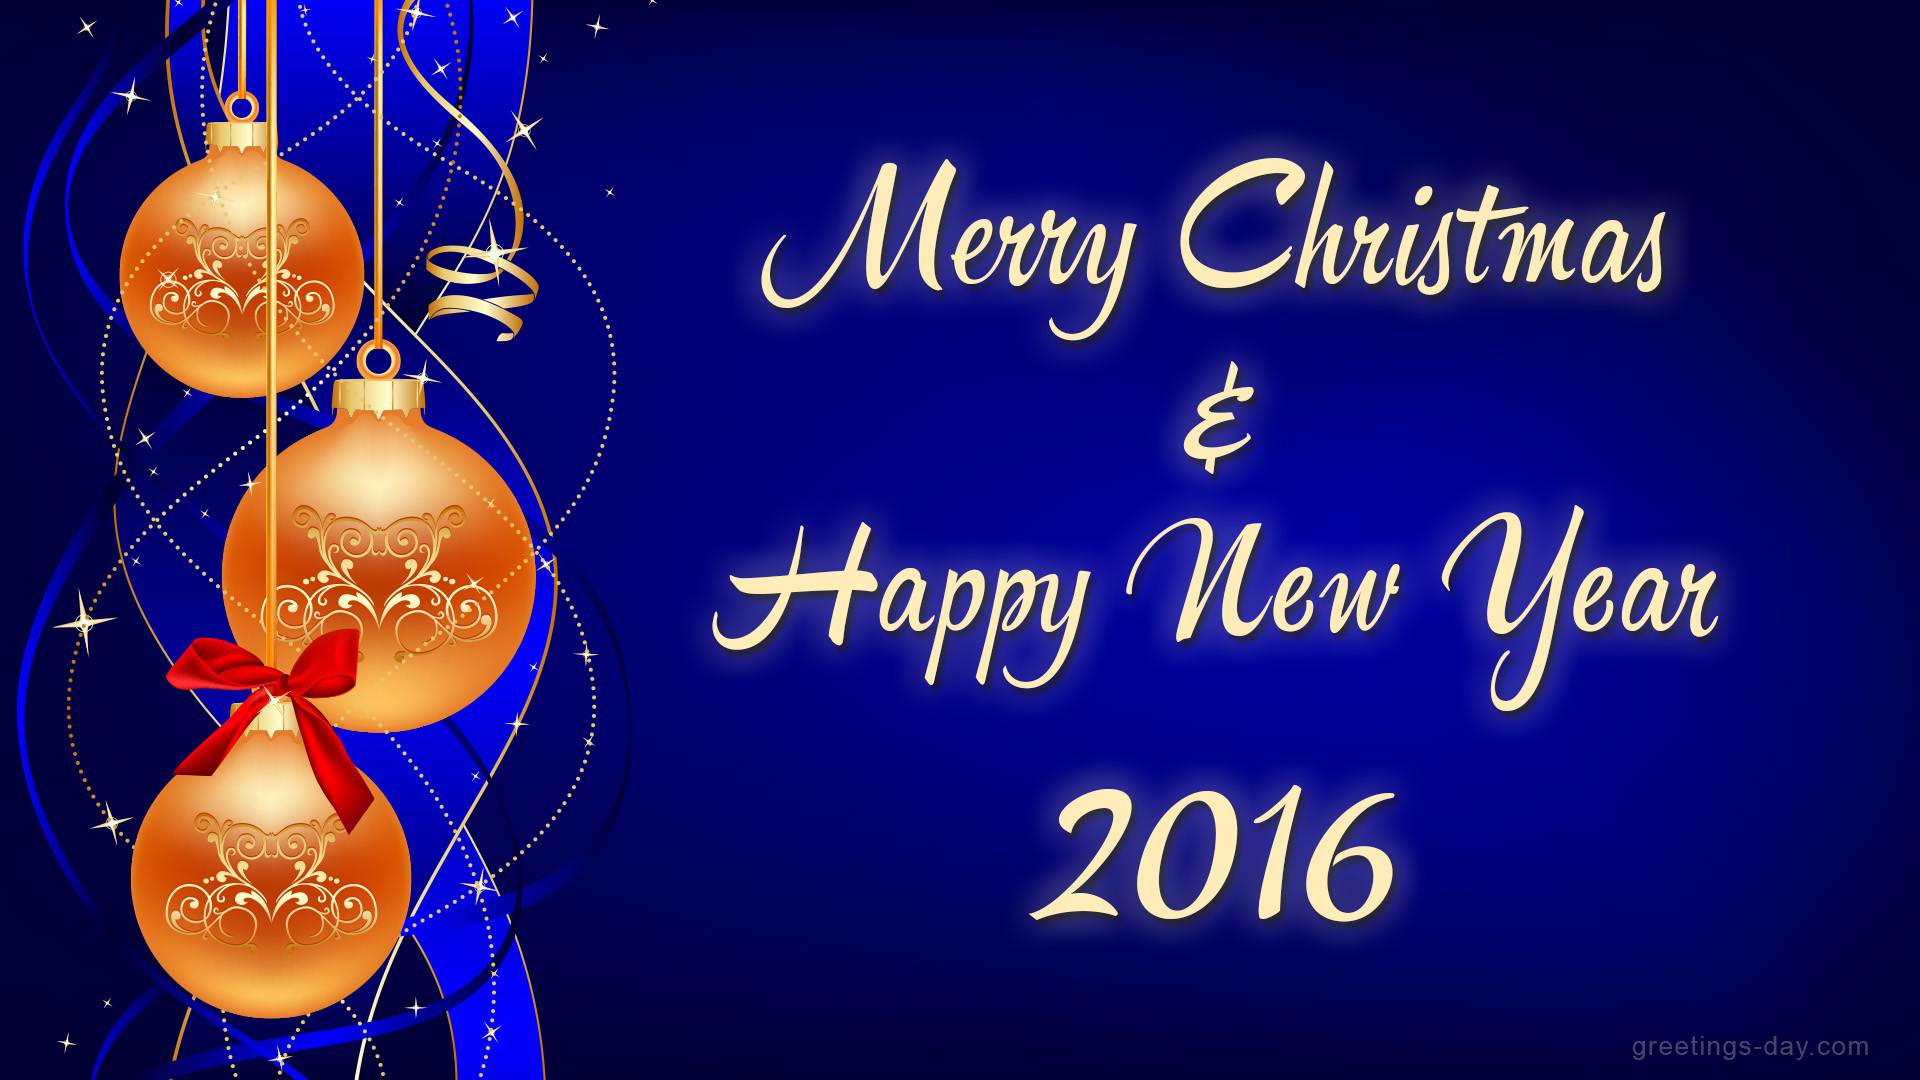 Merry Christmas Happy New Year 2016 Picture